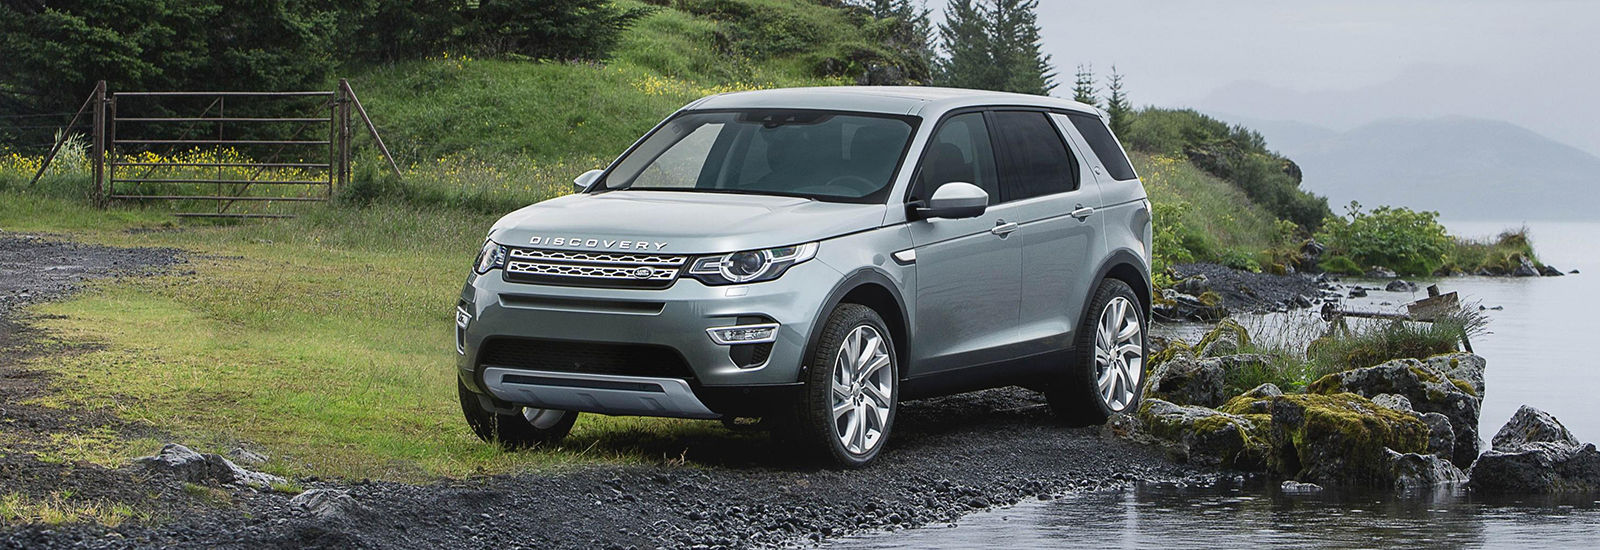 Who Makes Range Rover And Land Rover Carwow